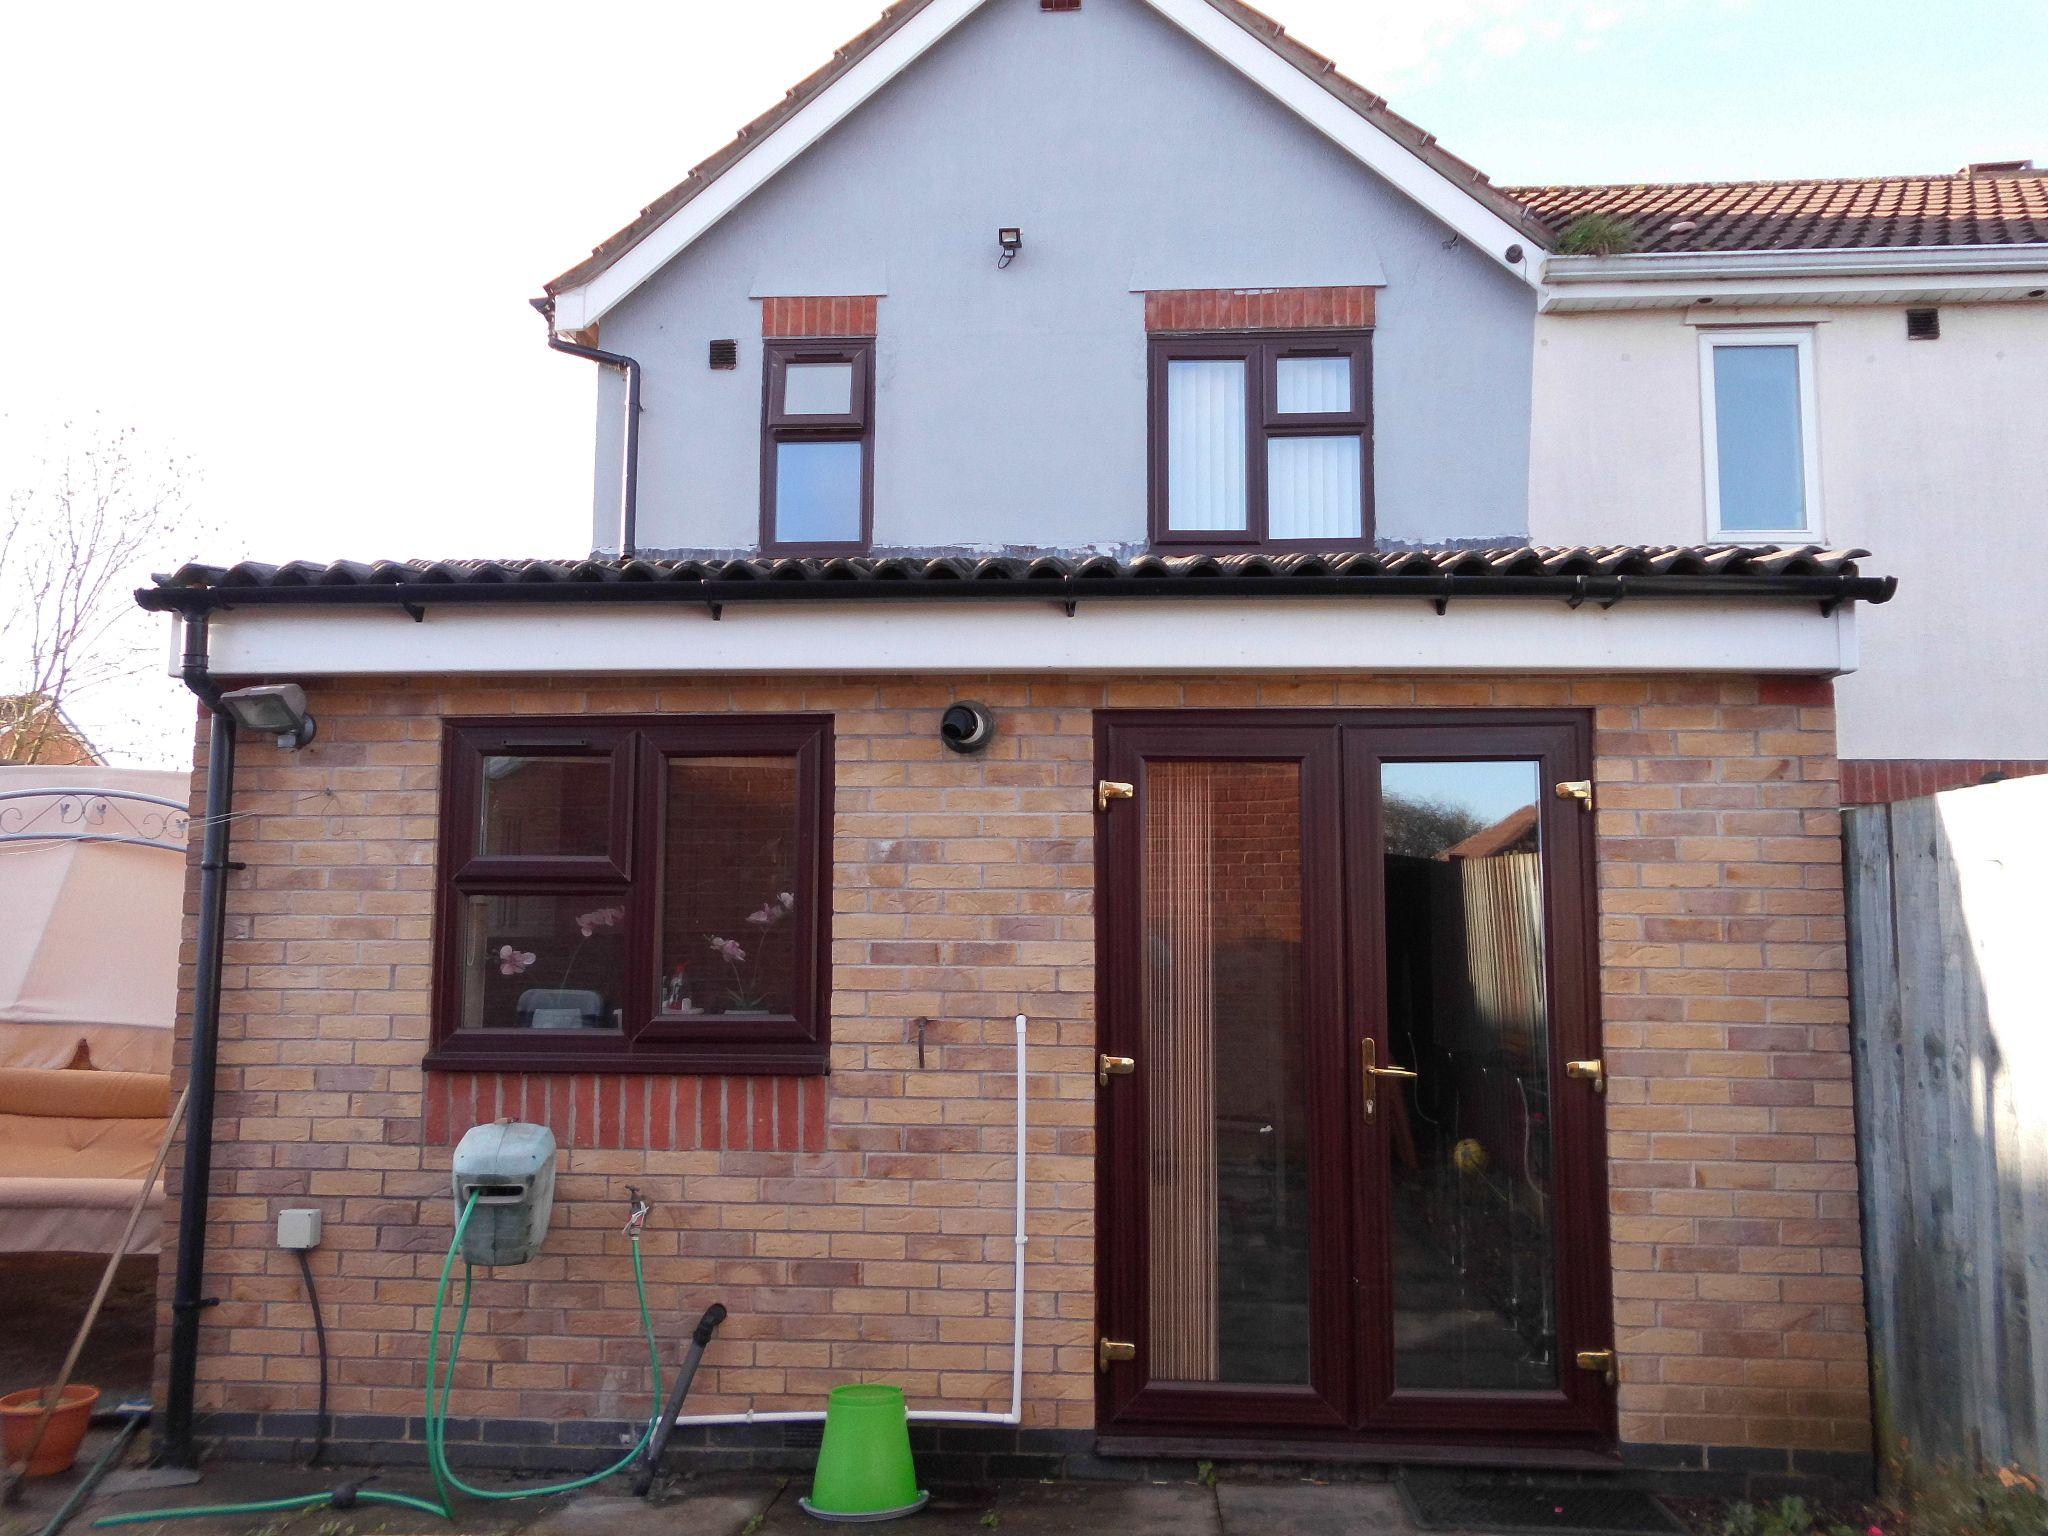 3 bedroom semi-detached house SSTC in Leicester - Photograph 13.